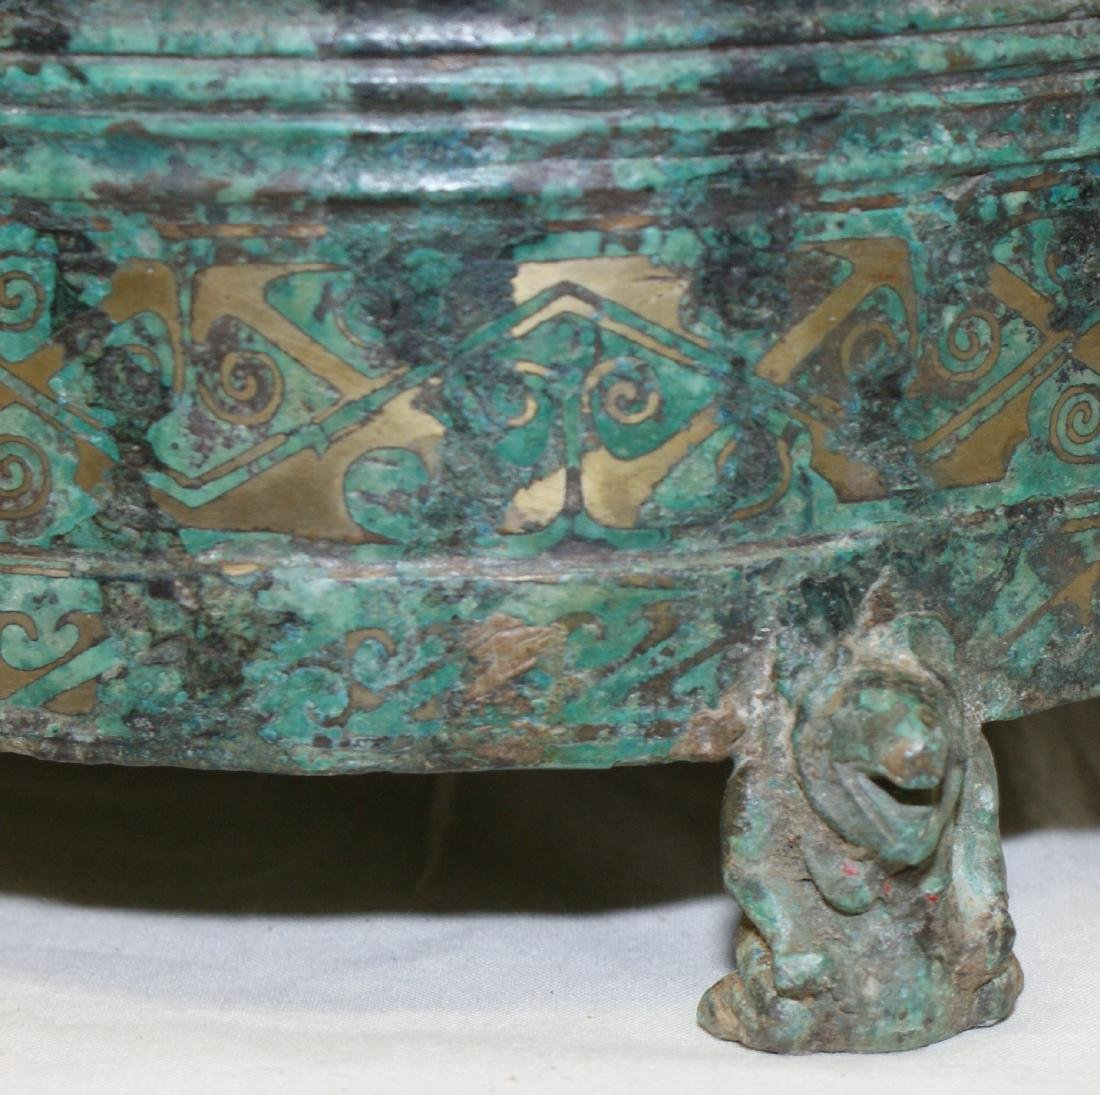 Archaic bronze vessel with inlaid. Han/Warring States - 5